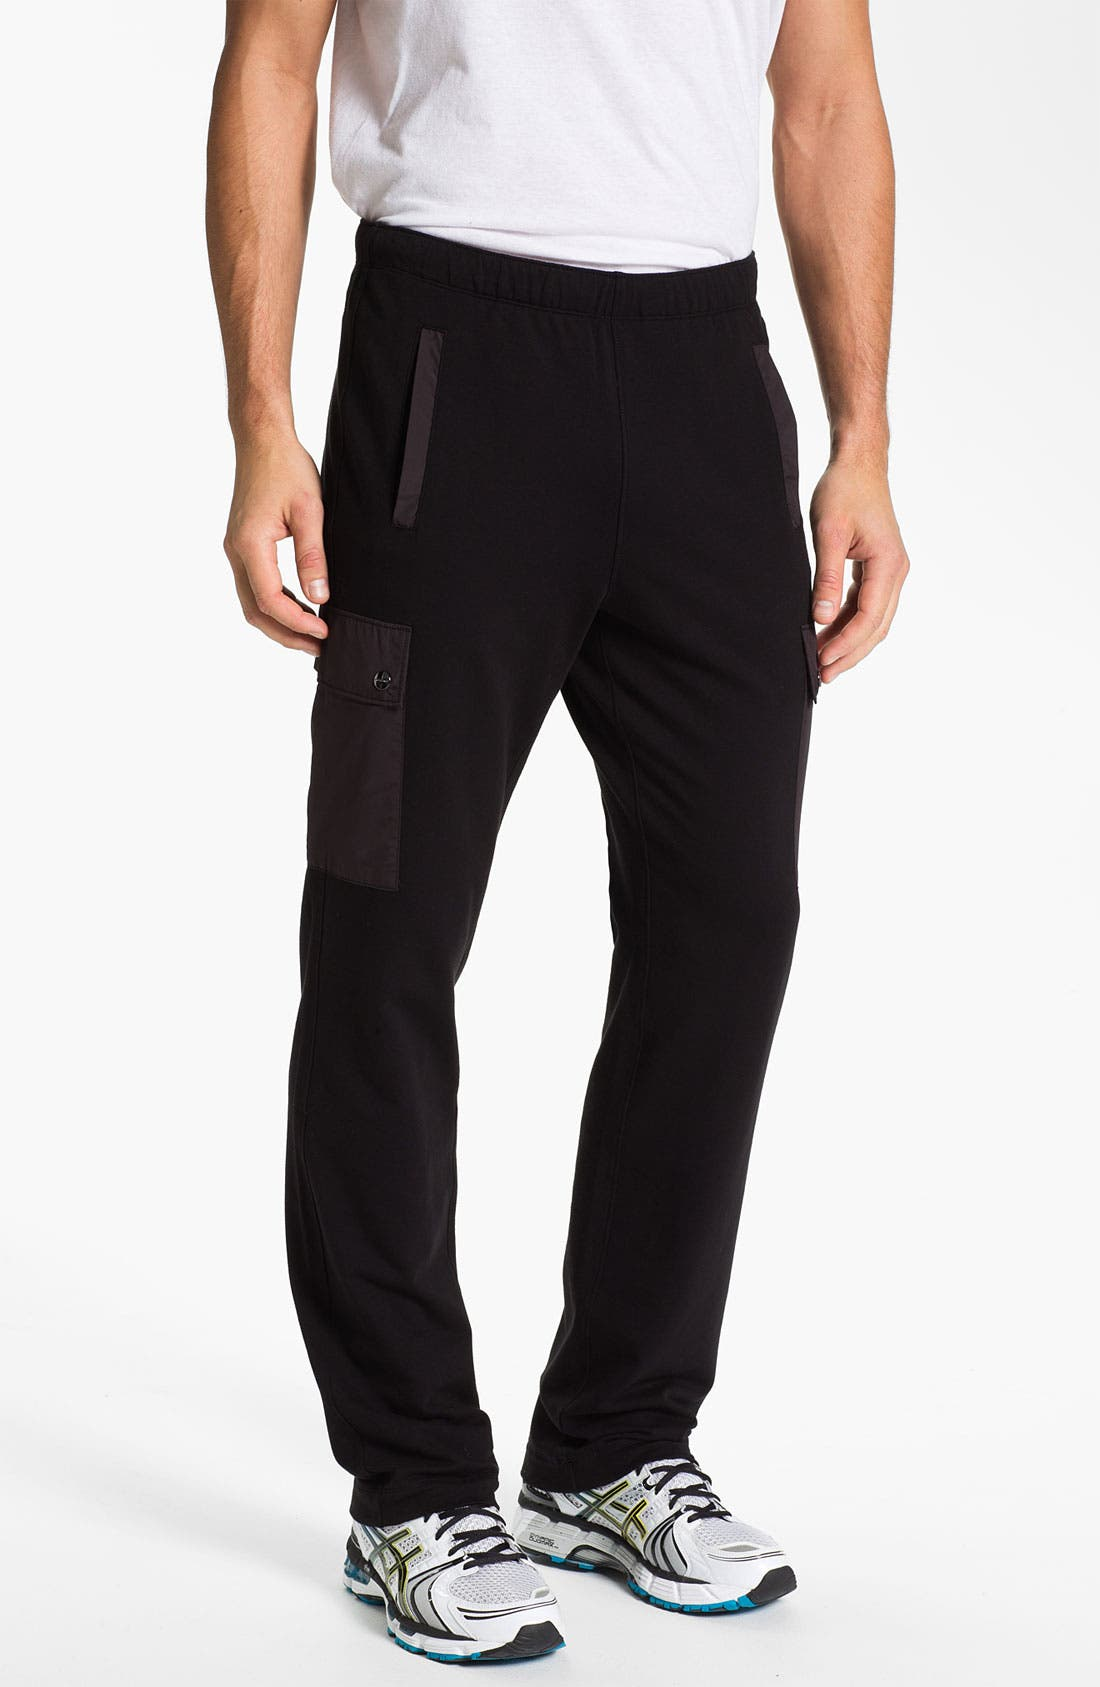 Alternate Image 1 Selected - Michael Kors Fleece Cargo Pants